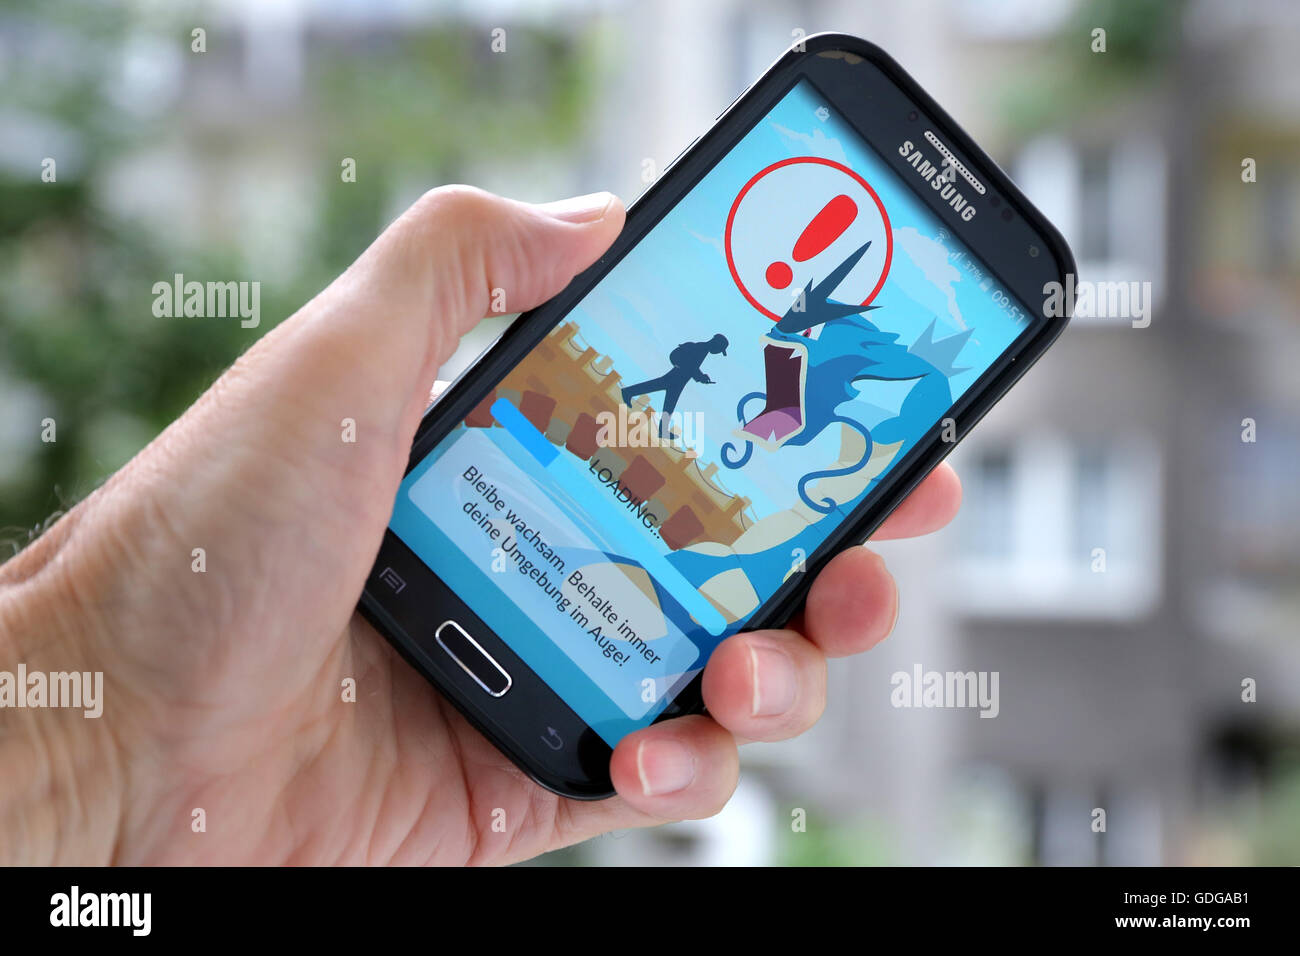 """German version of the latest Nintendo game """"Pokémon go"""" on a Samsung smartphone. The caution advises players to be aware of the surroundings while playing Pokemon Go. Dortmund, Germany, July 17th.2016 Stock Photo"""